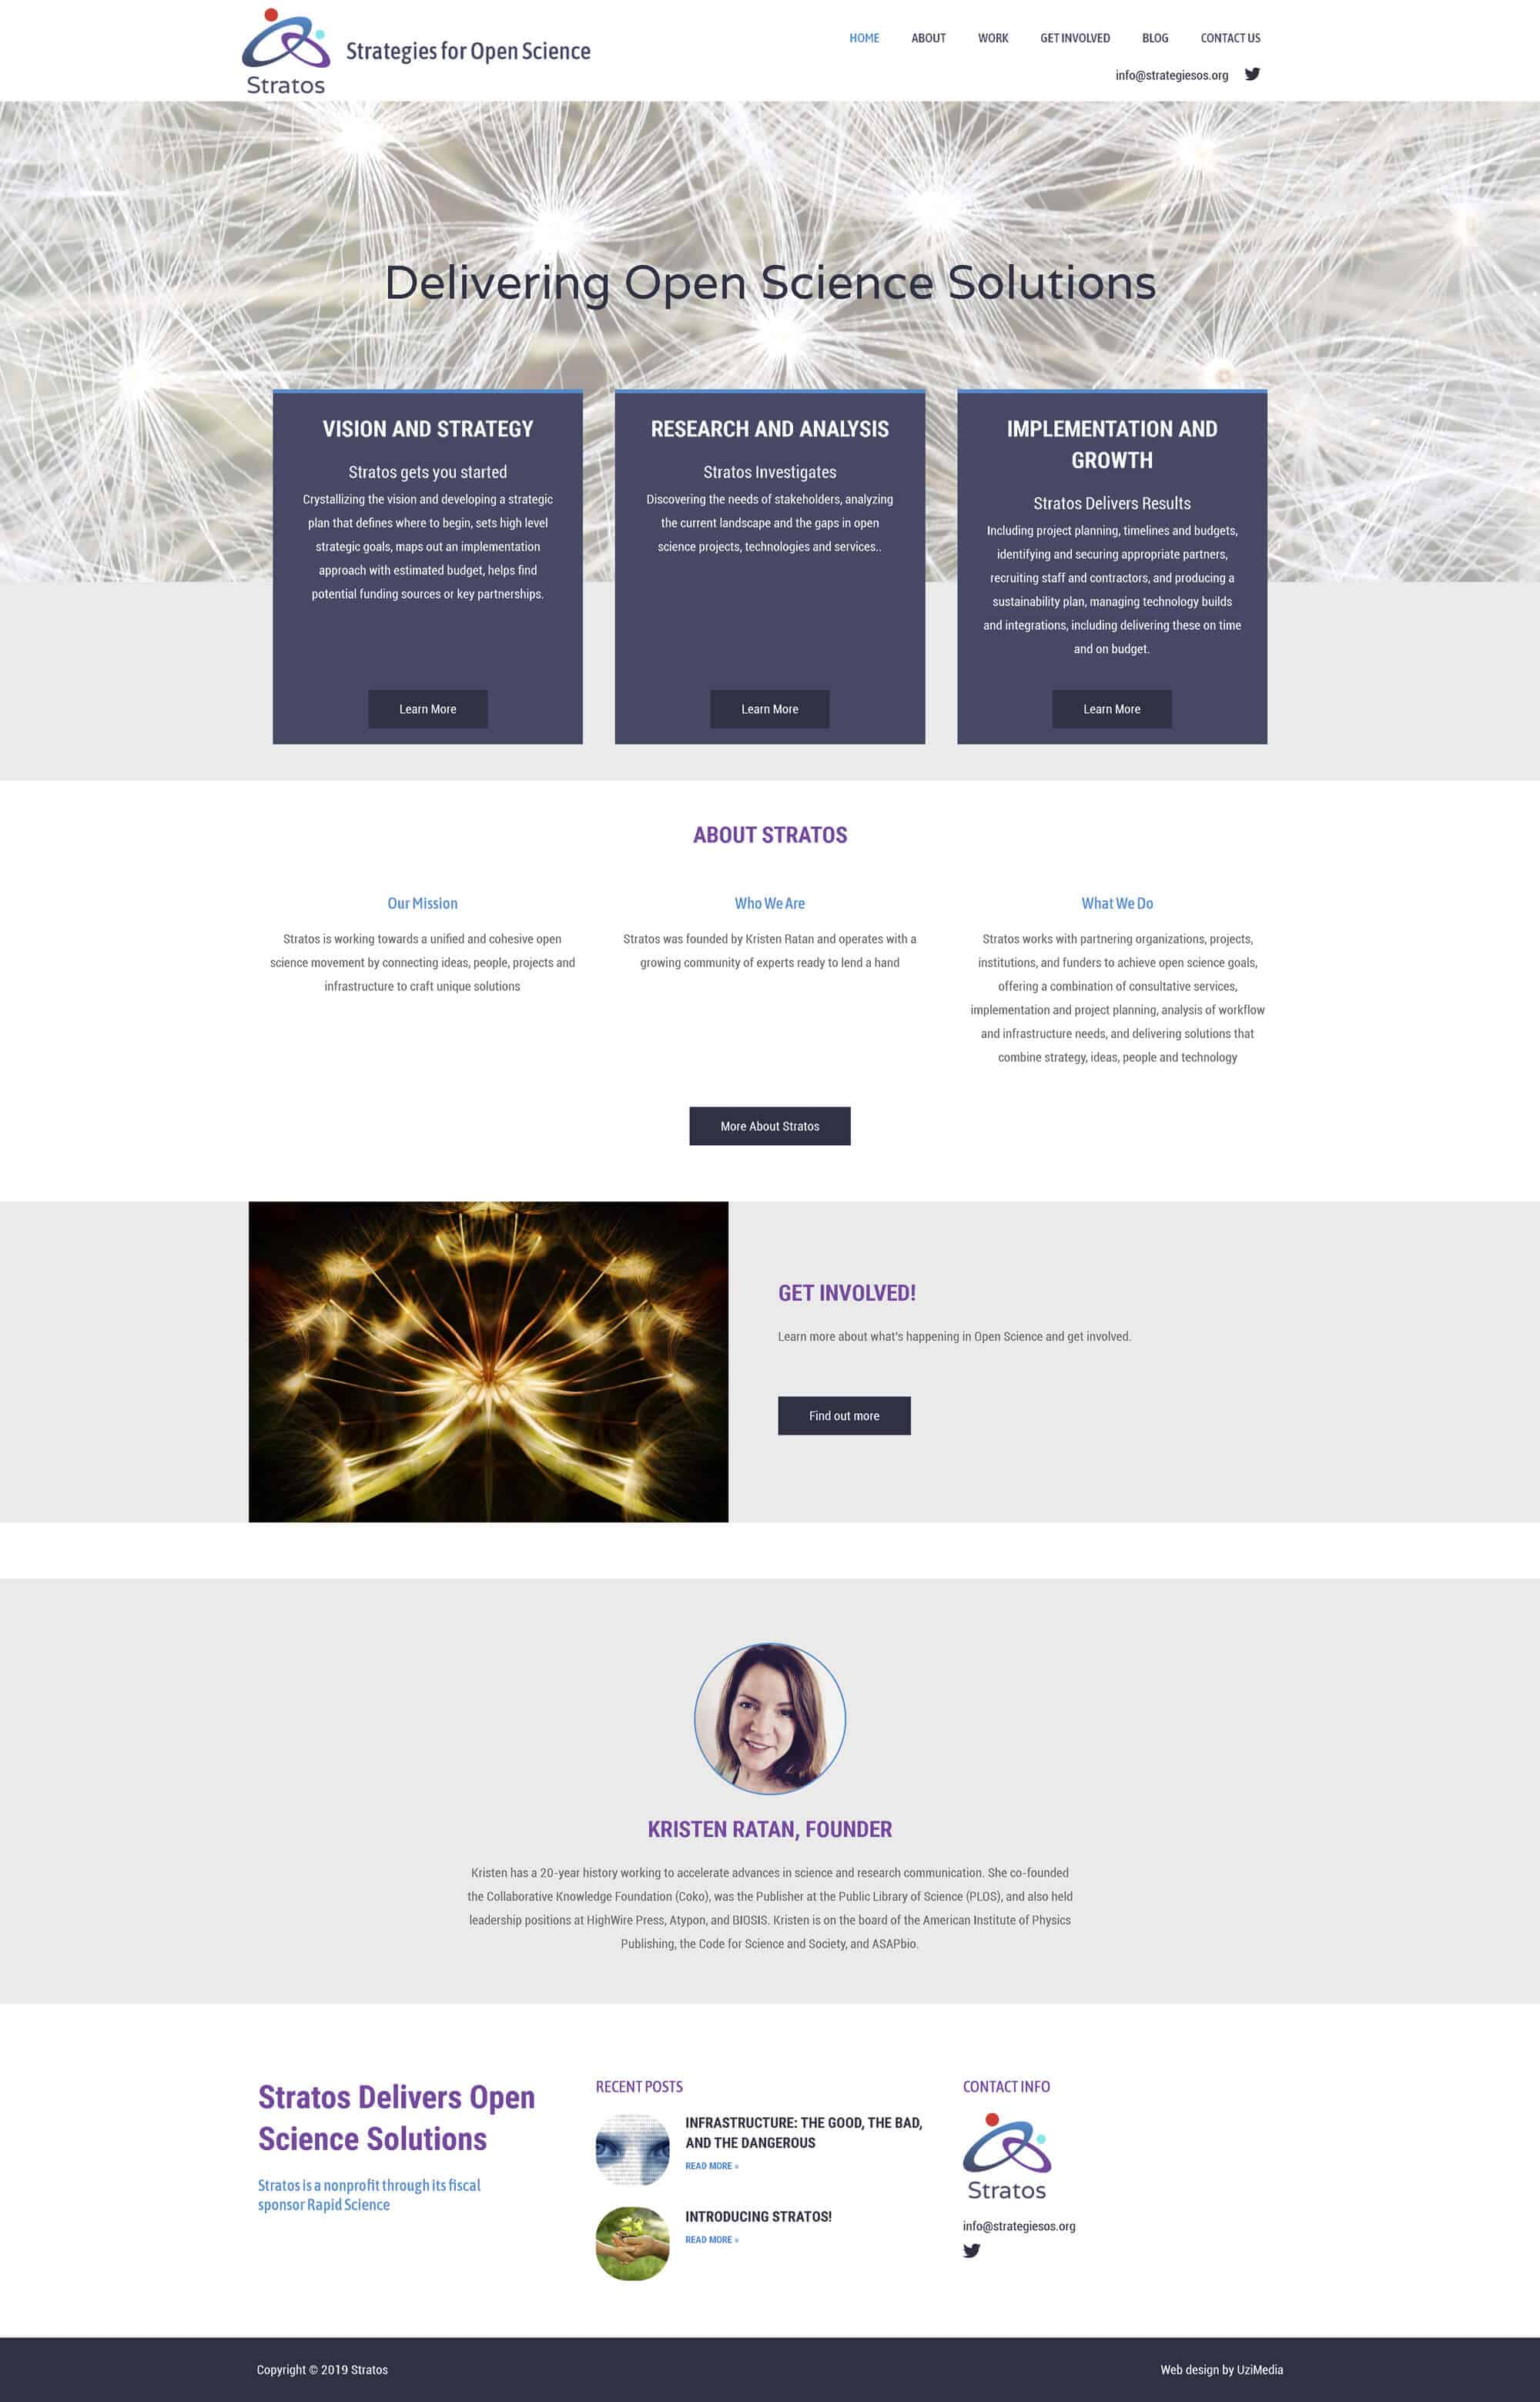 web design in the bay area by uzimedia for Non Profit Organization Stratos Strategies for Open Science